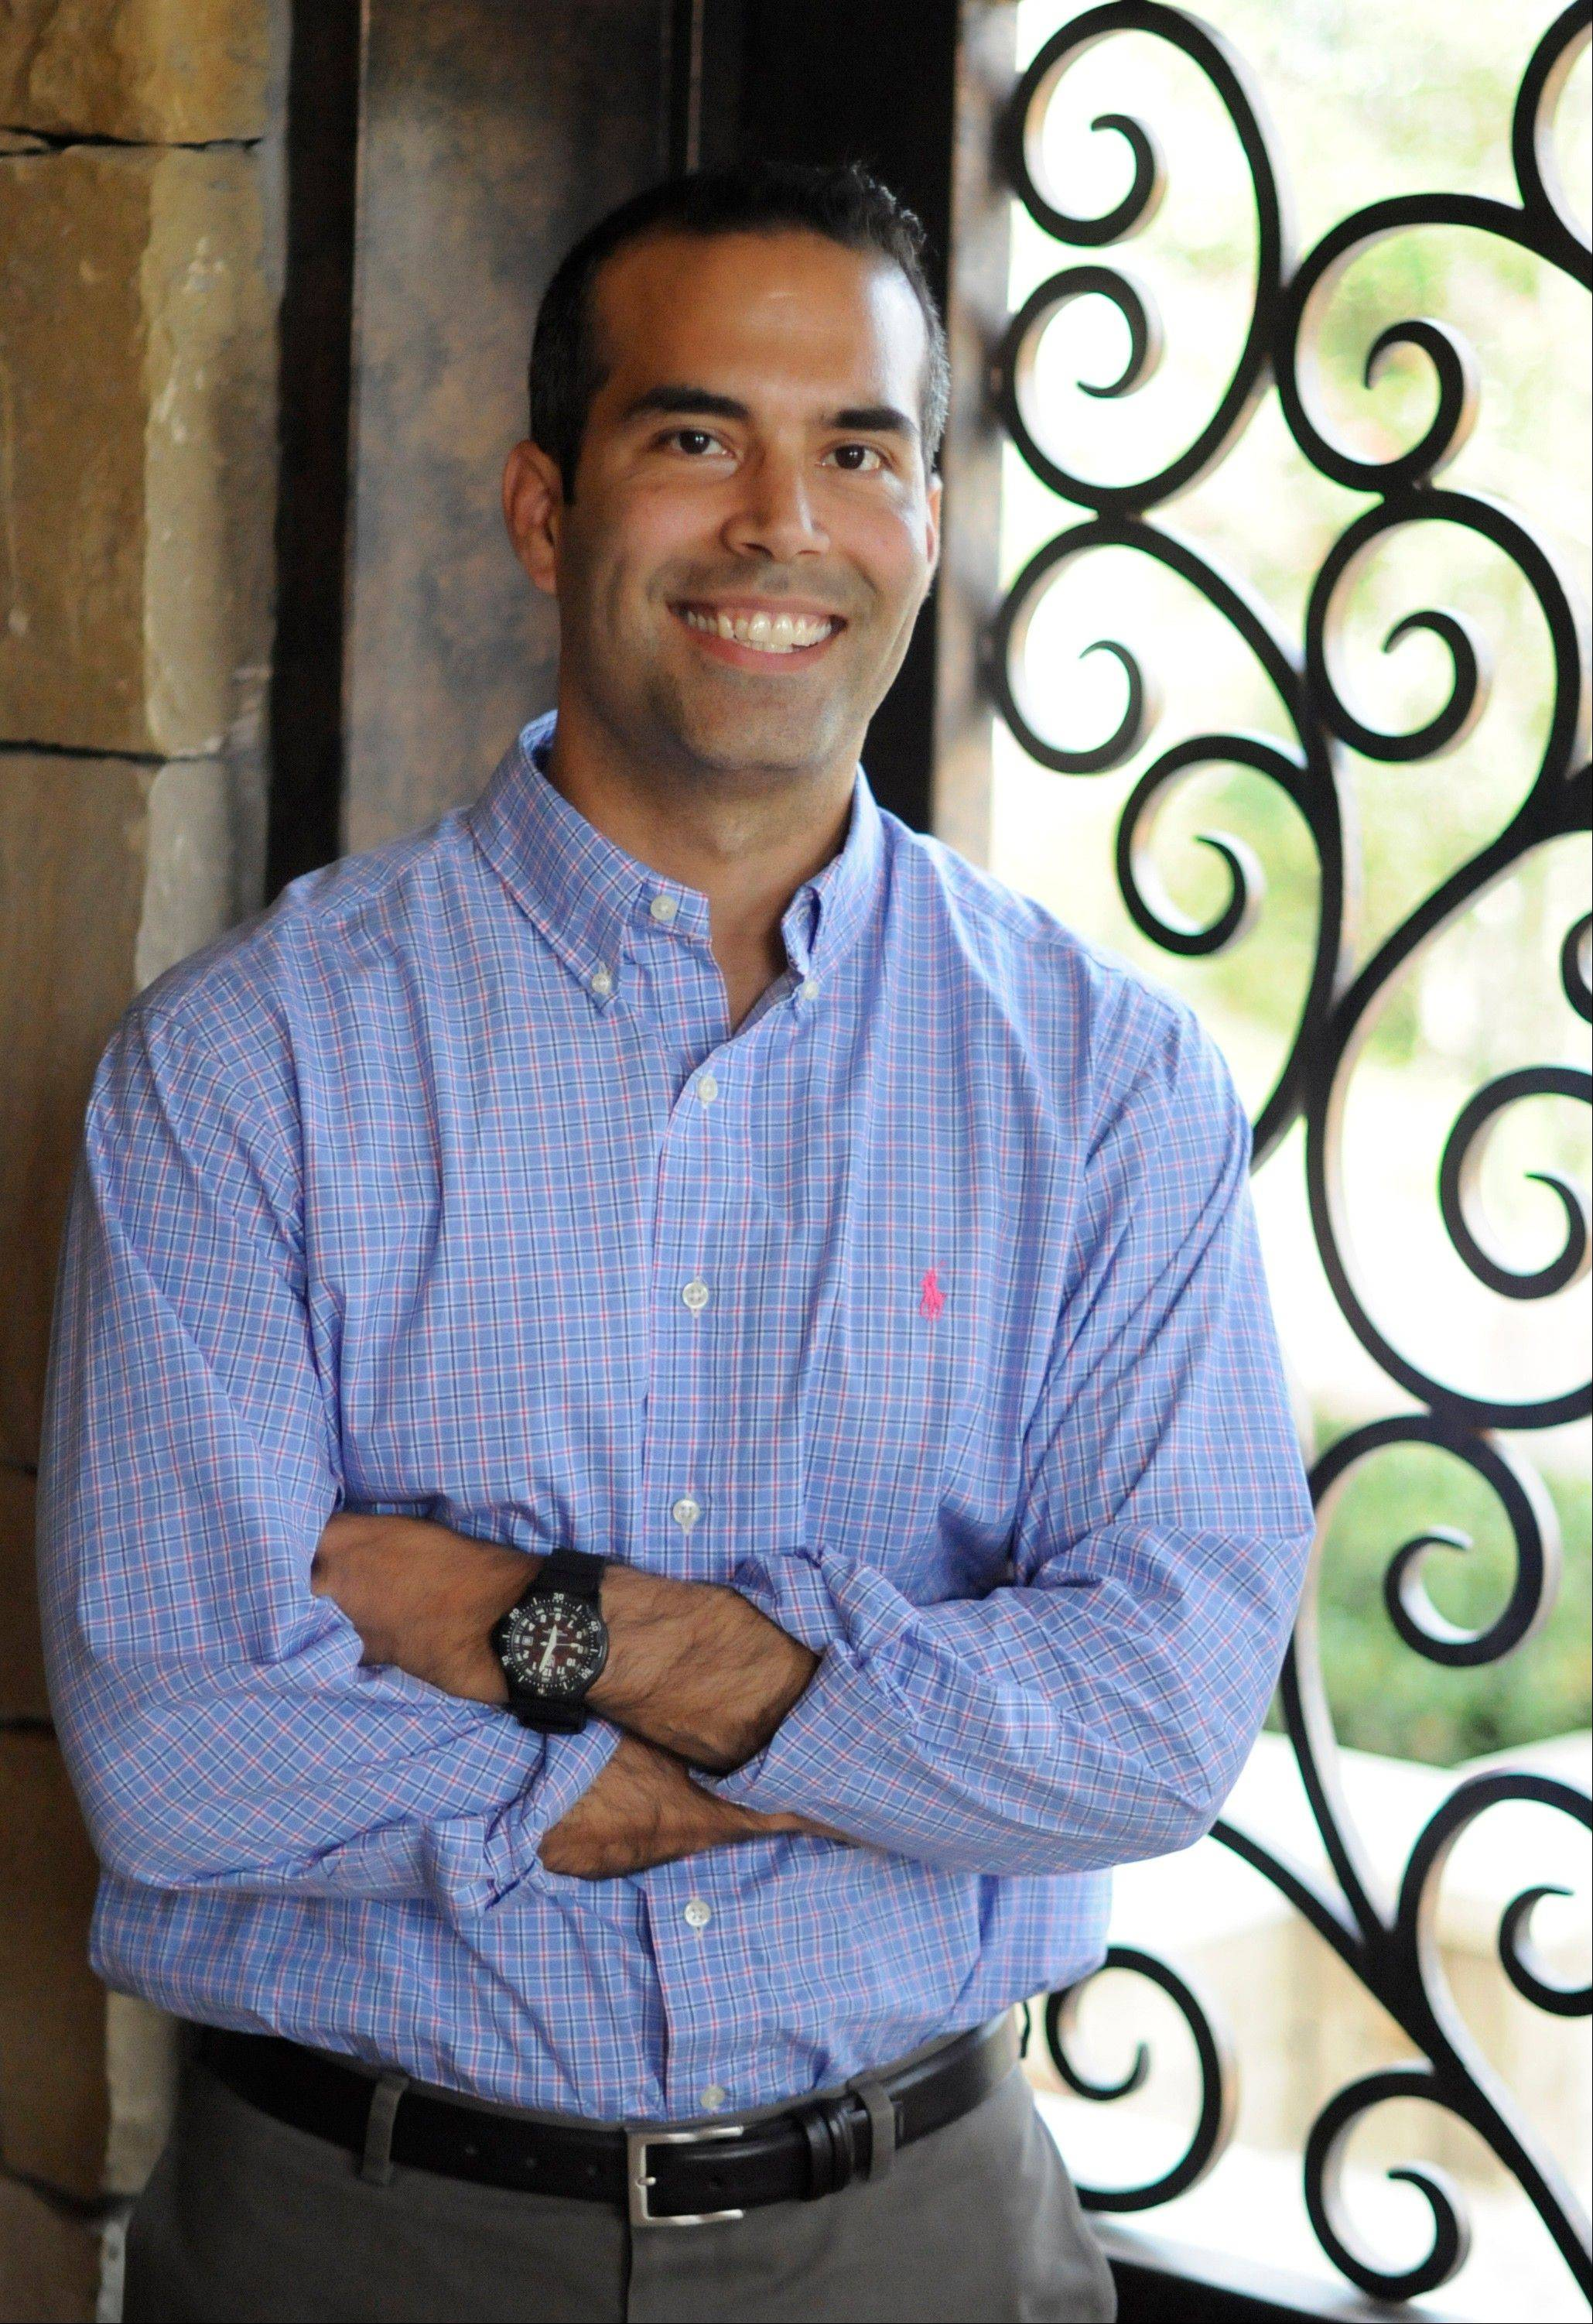 Associated PressGeorge P. Bush, 37, poses for a photo during an interview with The Associated Press in Frisco, Texas.